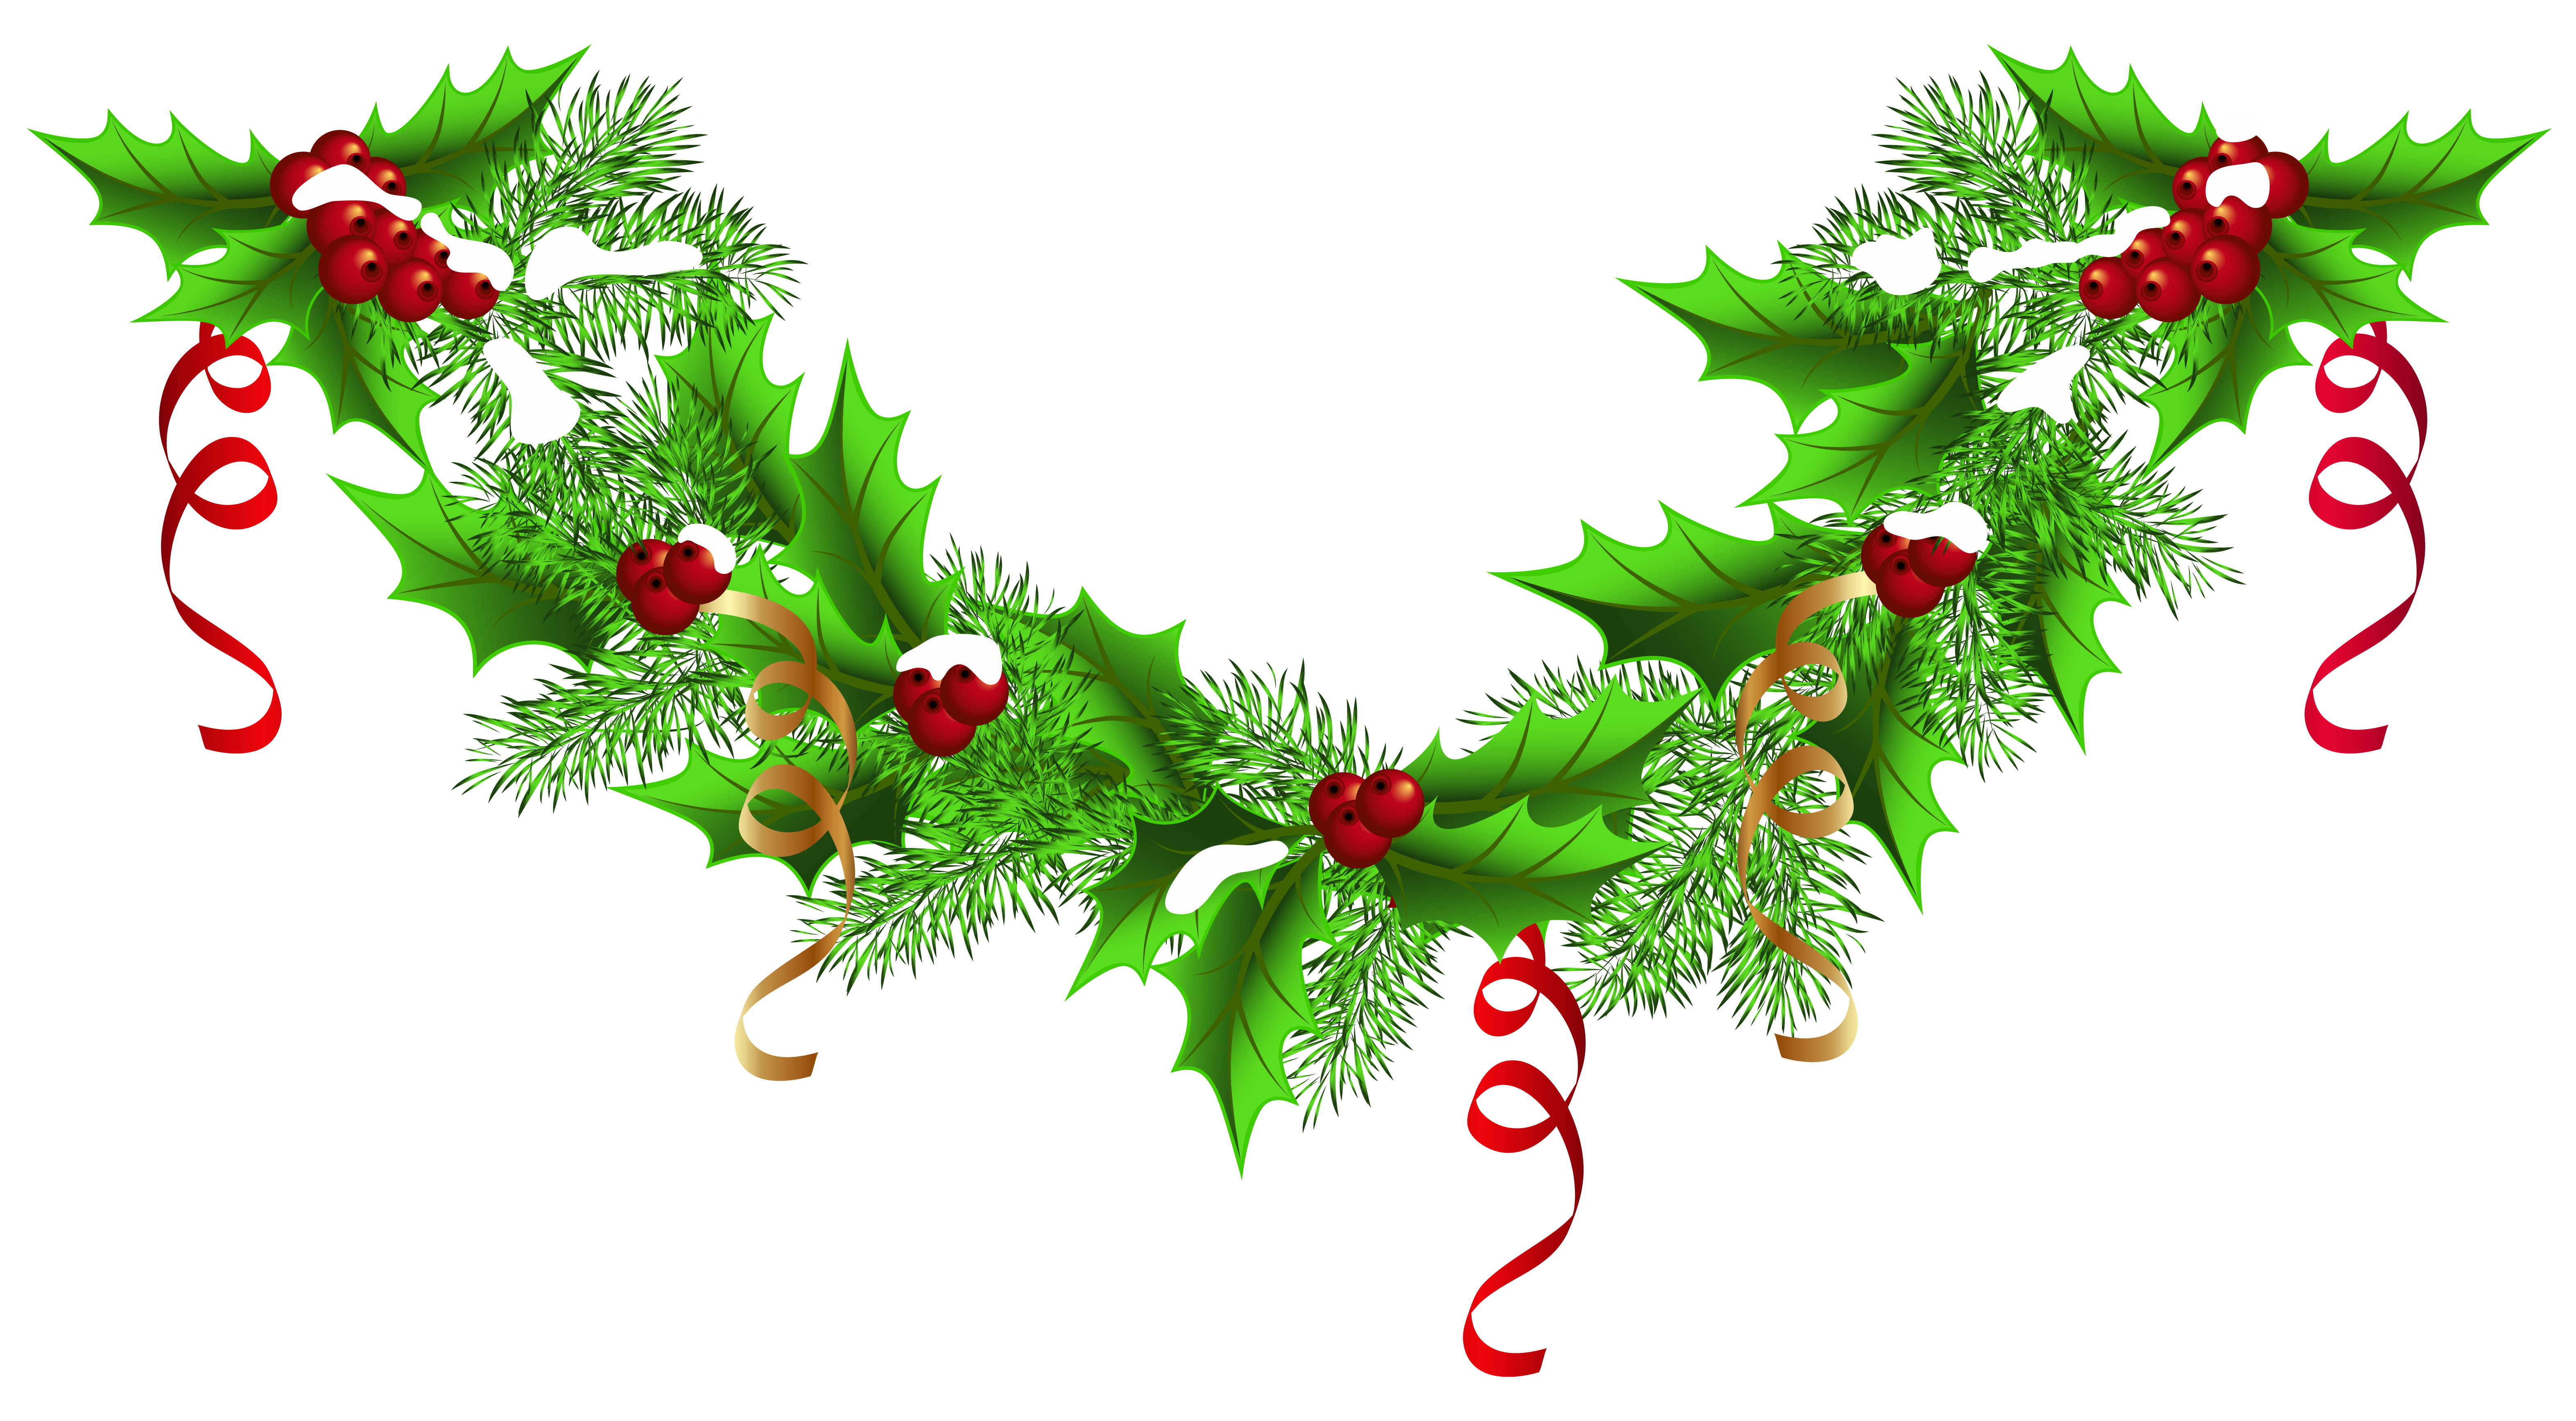 Free clipart christmas garland freeuse download Free Garland Cliparts, Download Free Clip Art, Free Clip Art on ... freeuse download